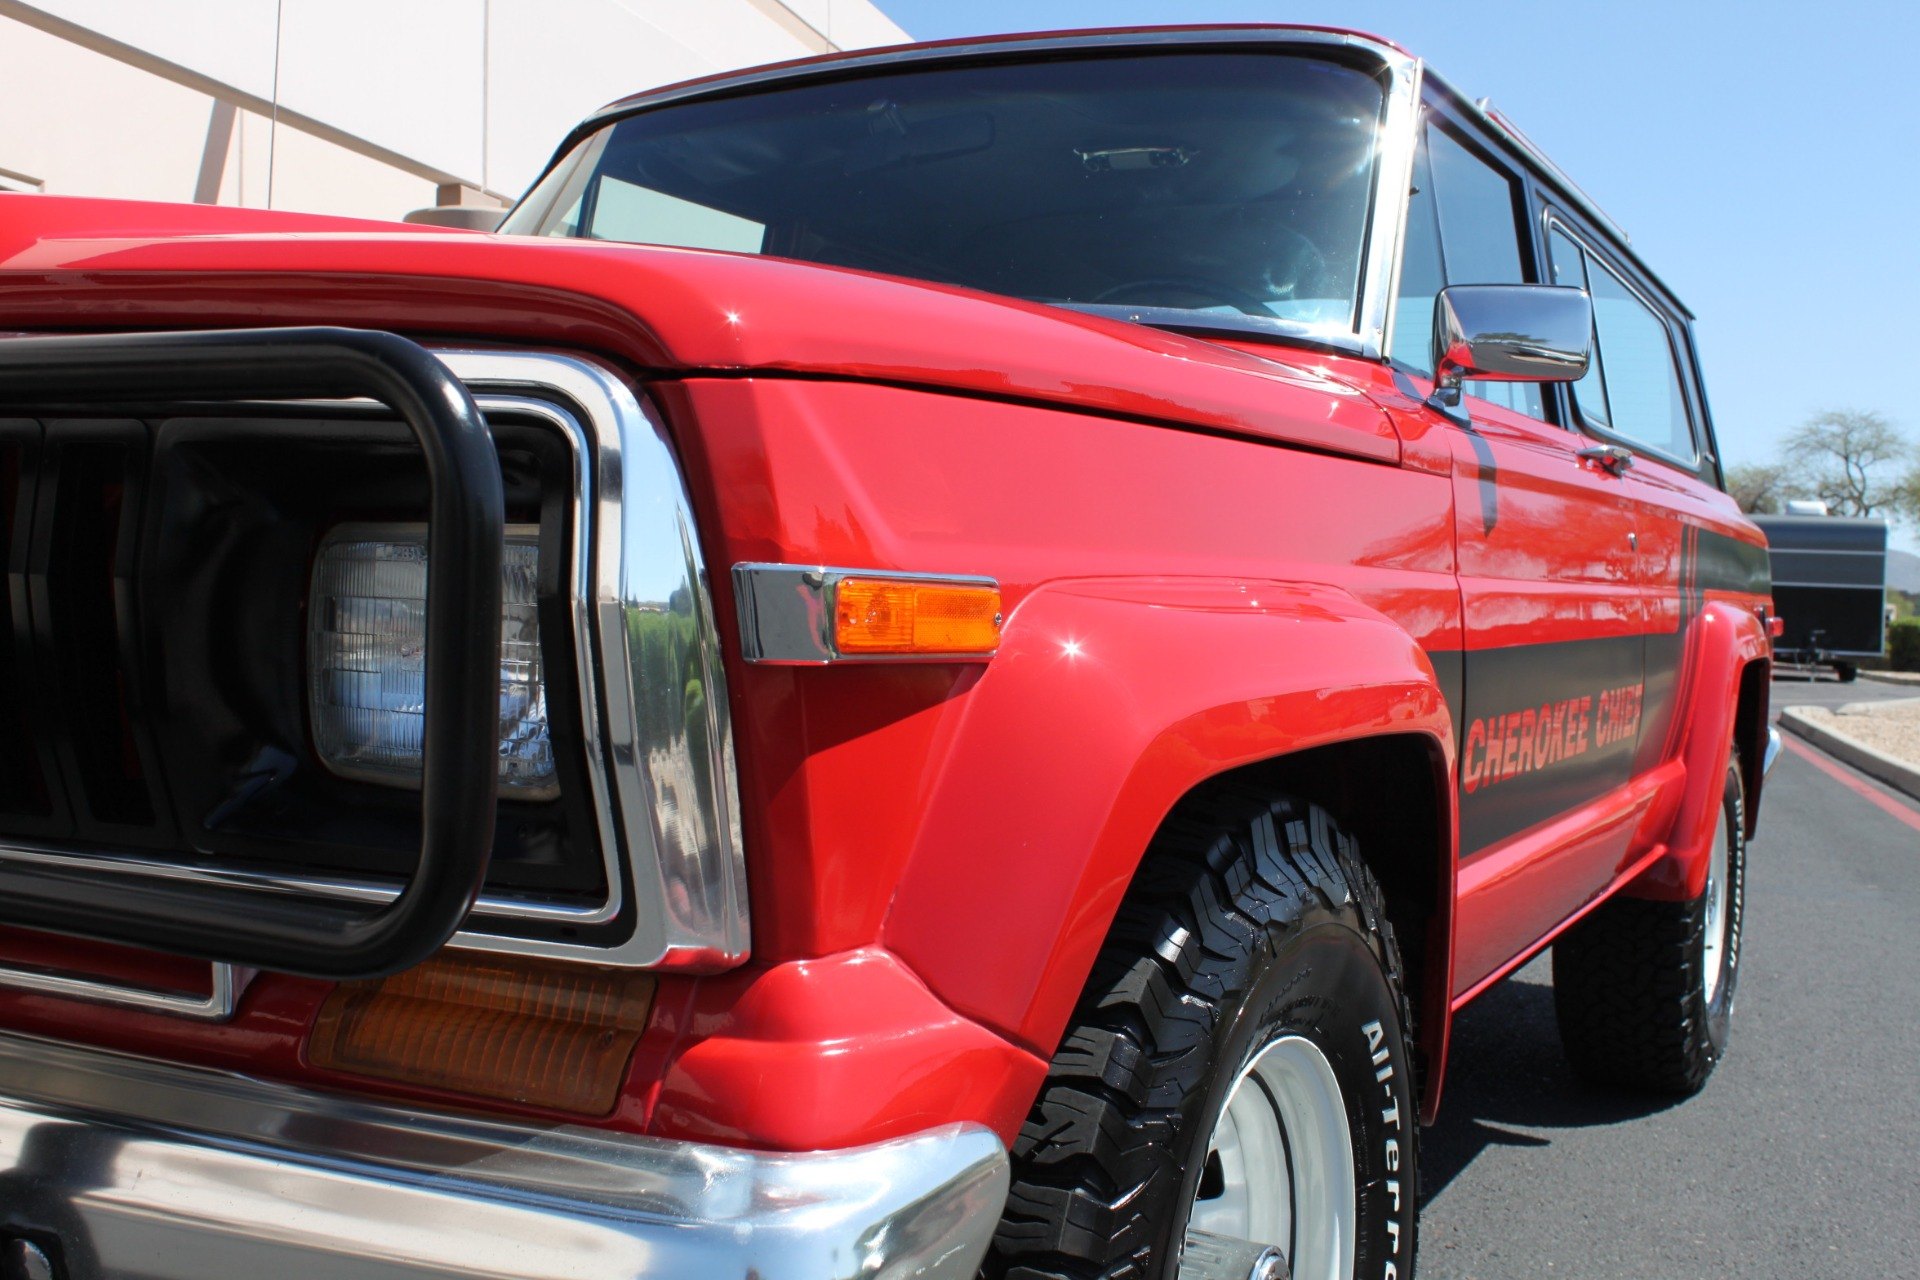 Used-1983-Jeep-Cherokee-Chief-4WD-LS400